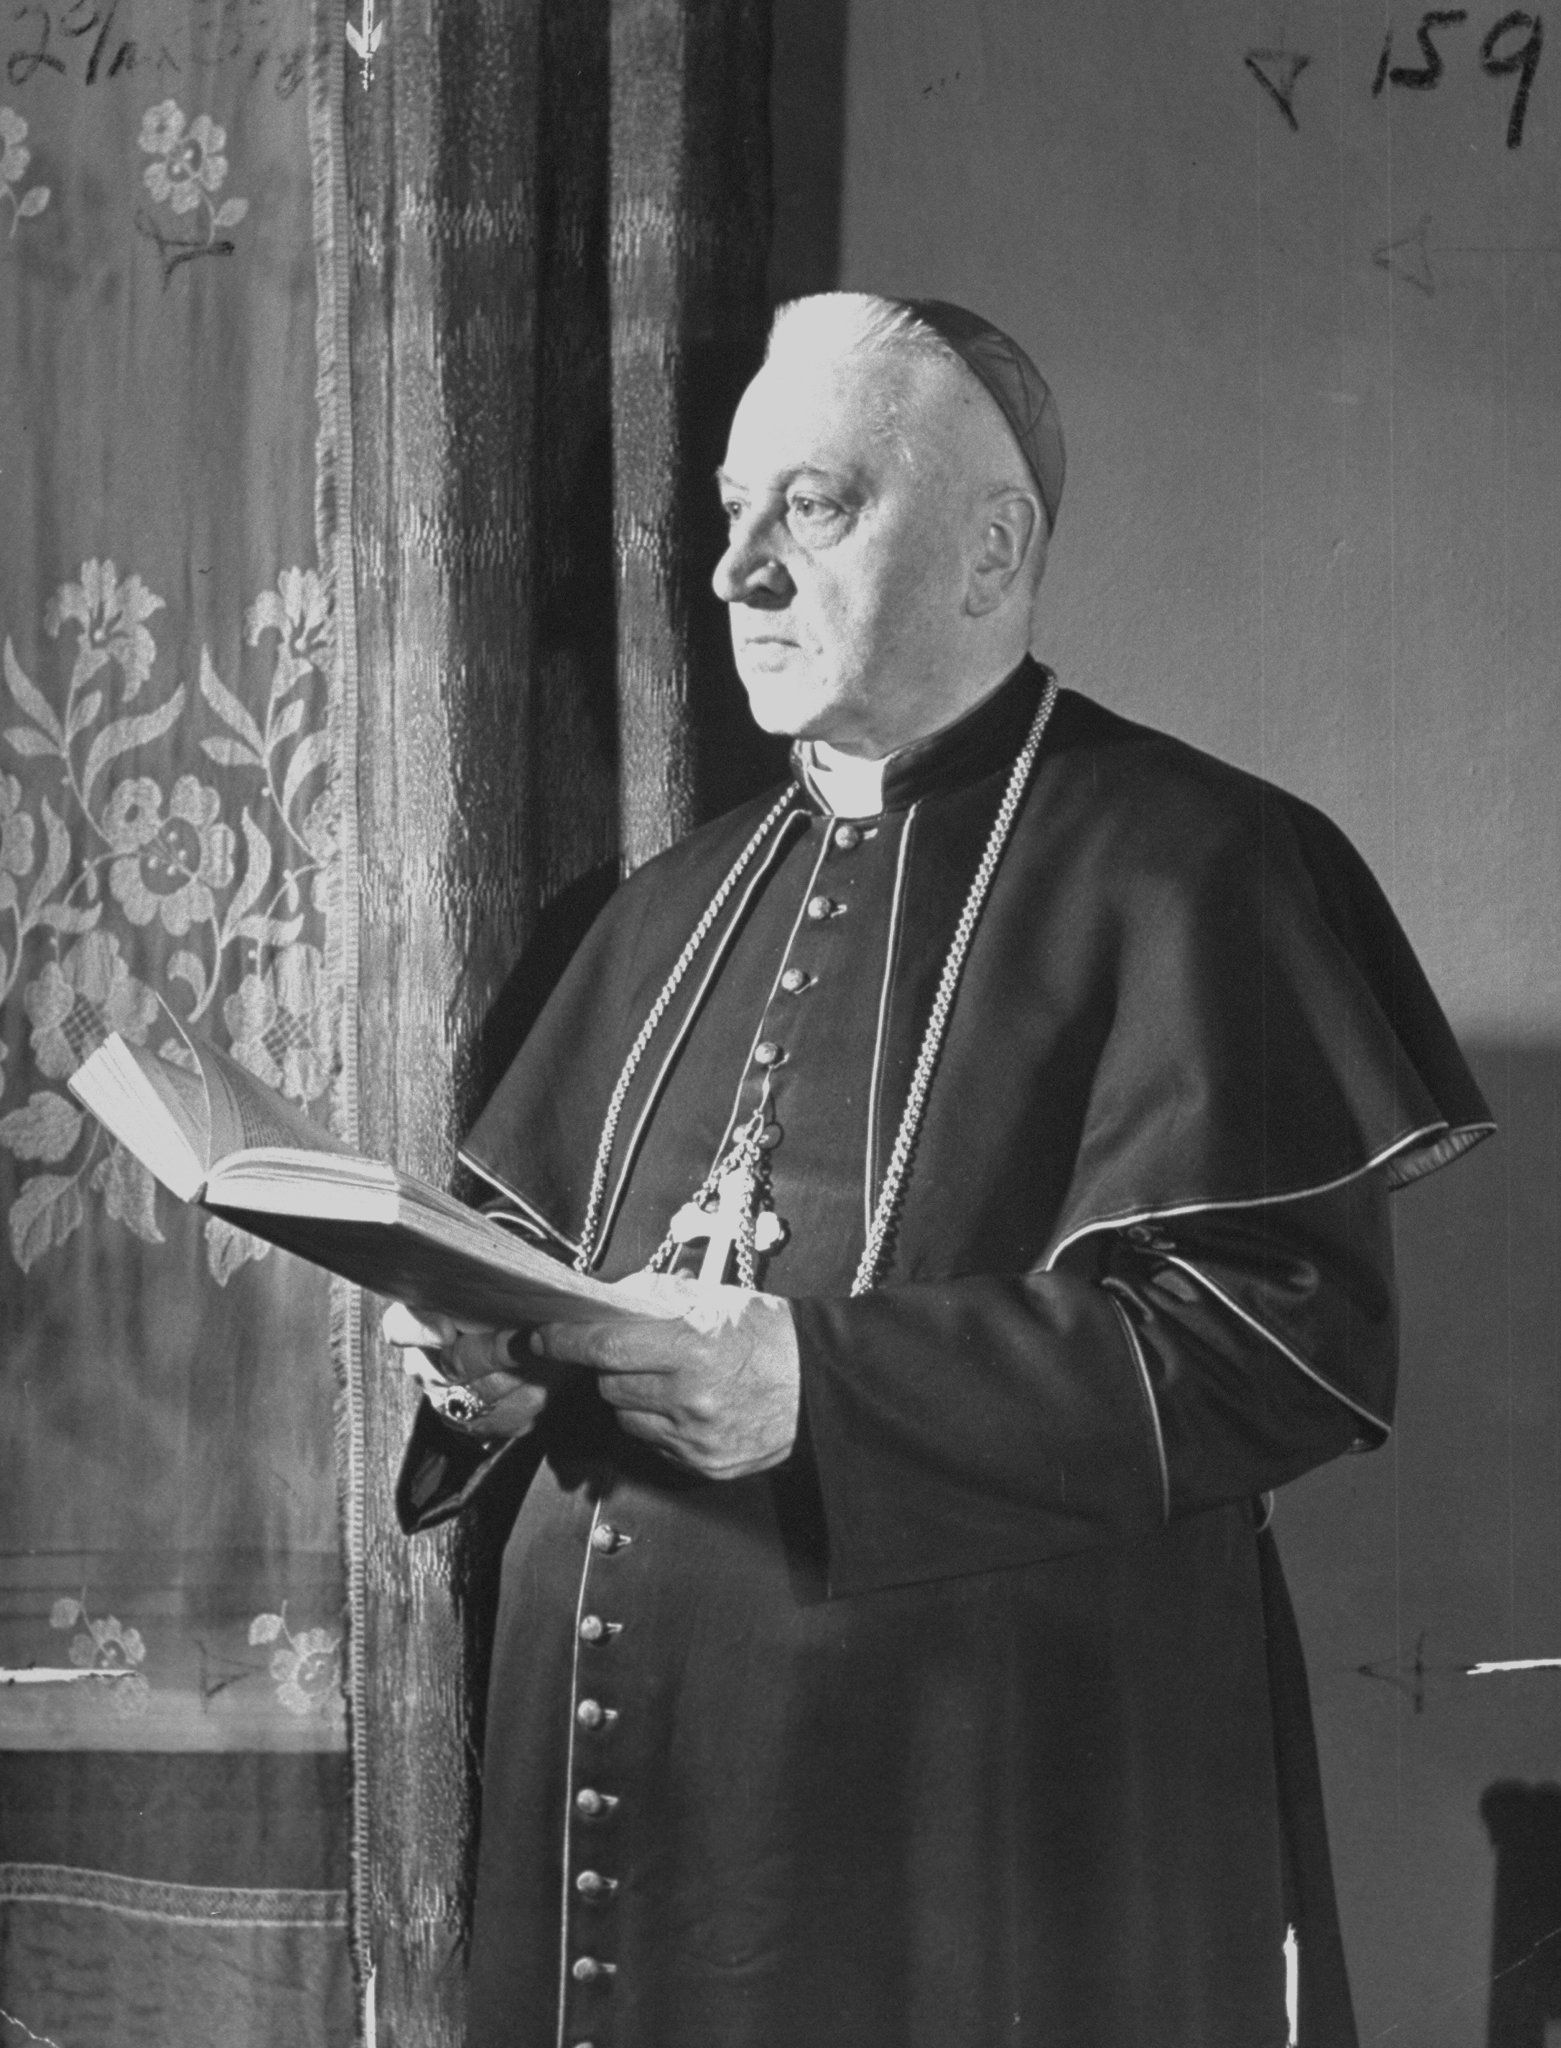 Polish Cardinal August Hlond standing and holding book.  (Photo by Tony Linck/The LIFE Picture Collection/Getty Images)